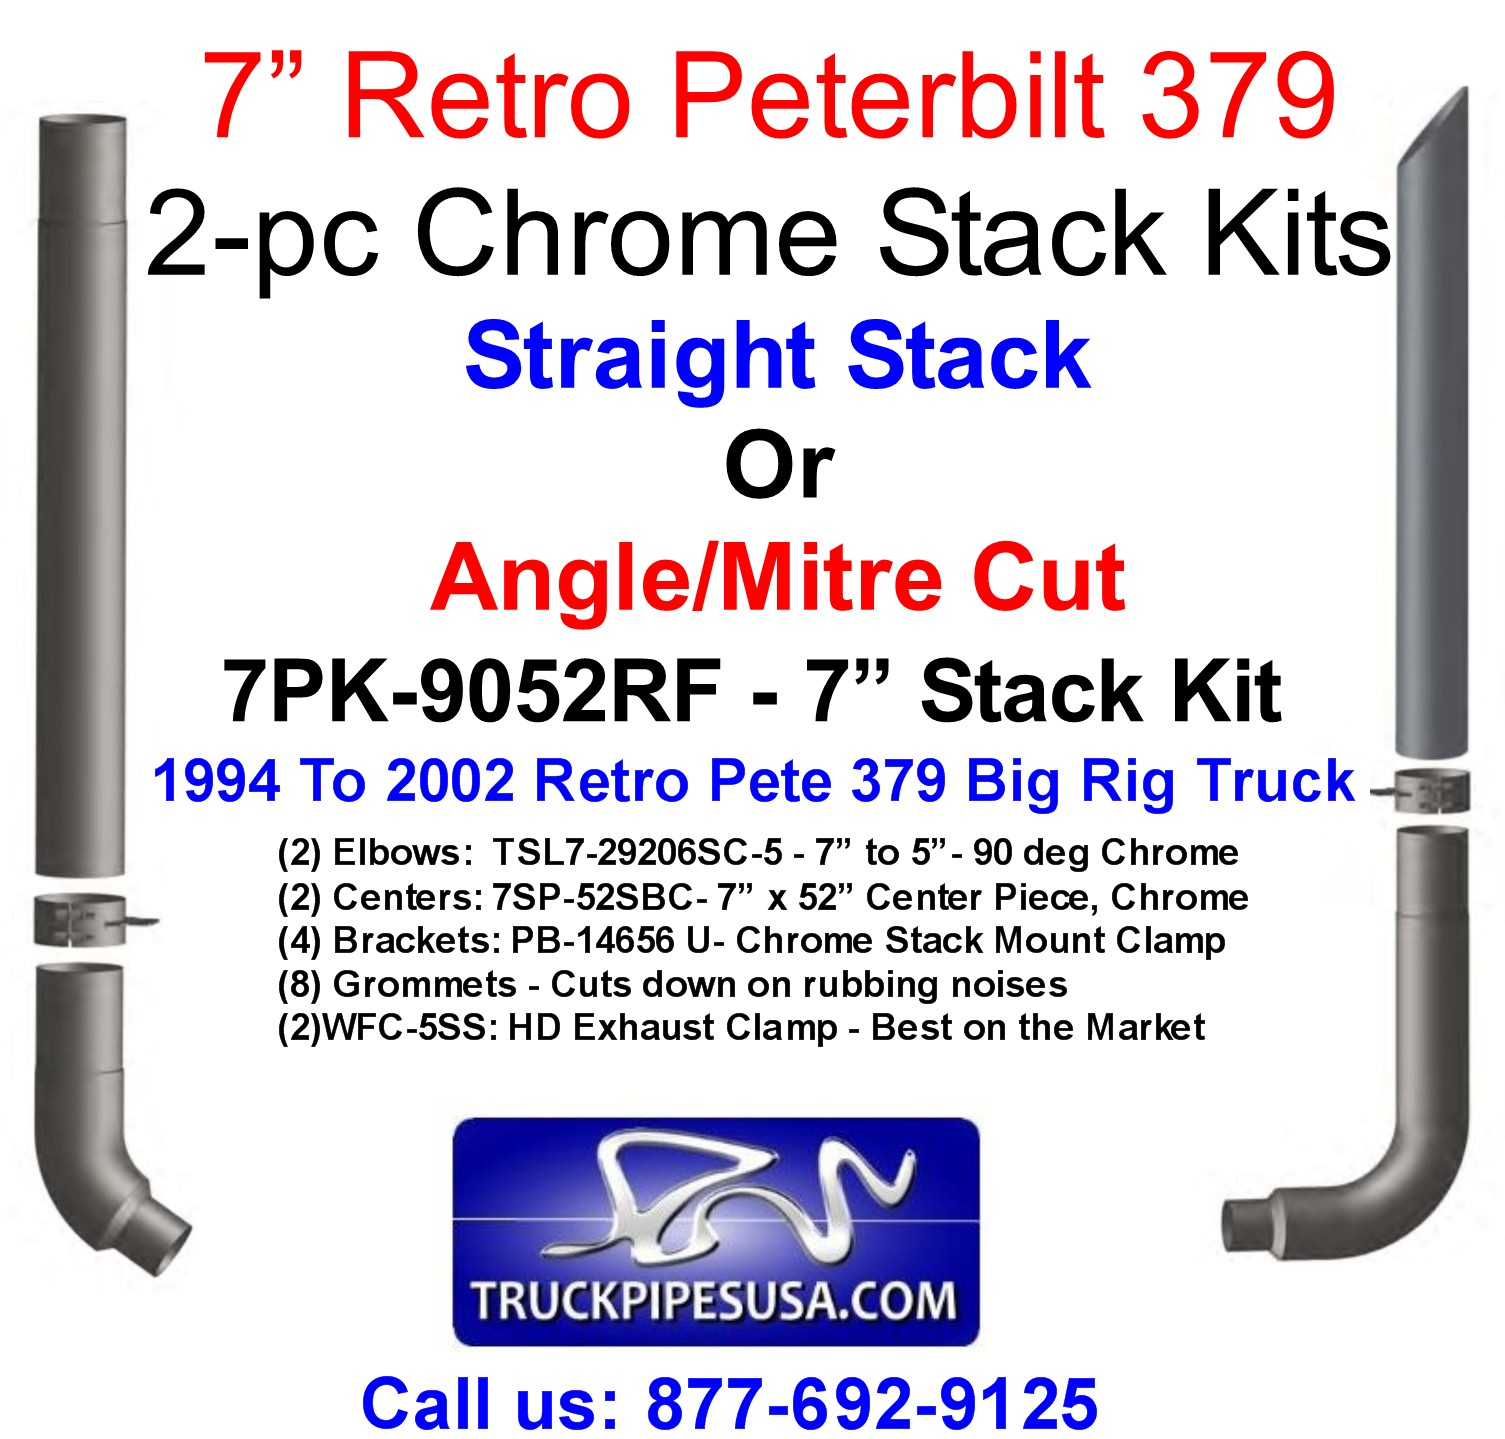 7pk-9052rf-7-inch-straight-or-mitre-stack-kit-for-a-retro-peterbilt-379-for-1994-ro-2002.jpg